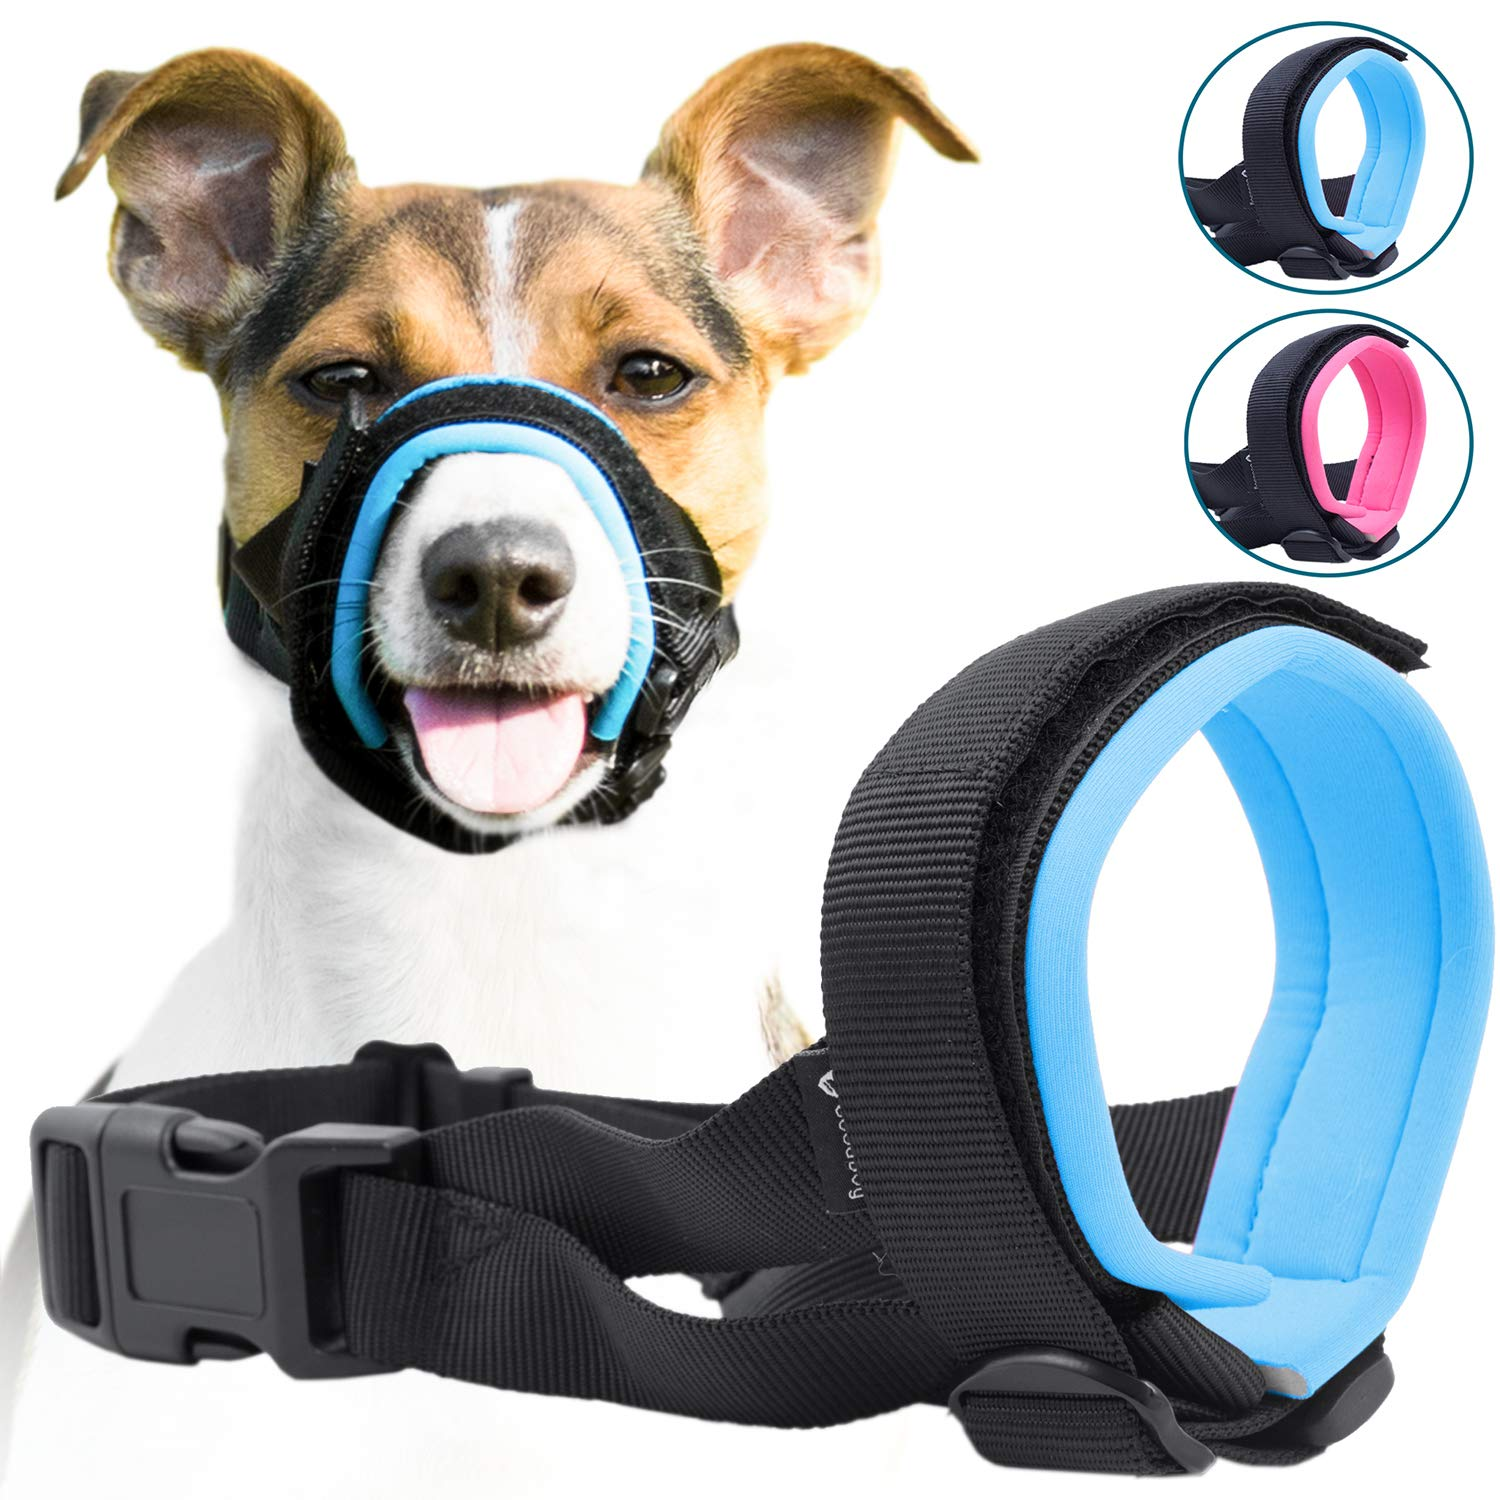 bluee Extra Large bluee Extra Large Gentle Muzzle Guard for Dogs Prevents Biting and Unwanted Chewing Safely New Secure Comfort Fit Soft Neoprene Padding No More Chafing Training Guide Helps Build Bonds with Pet (XL, bluee)